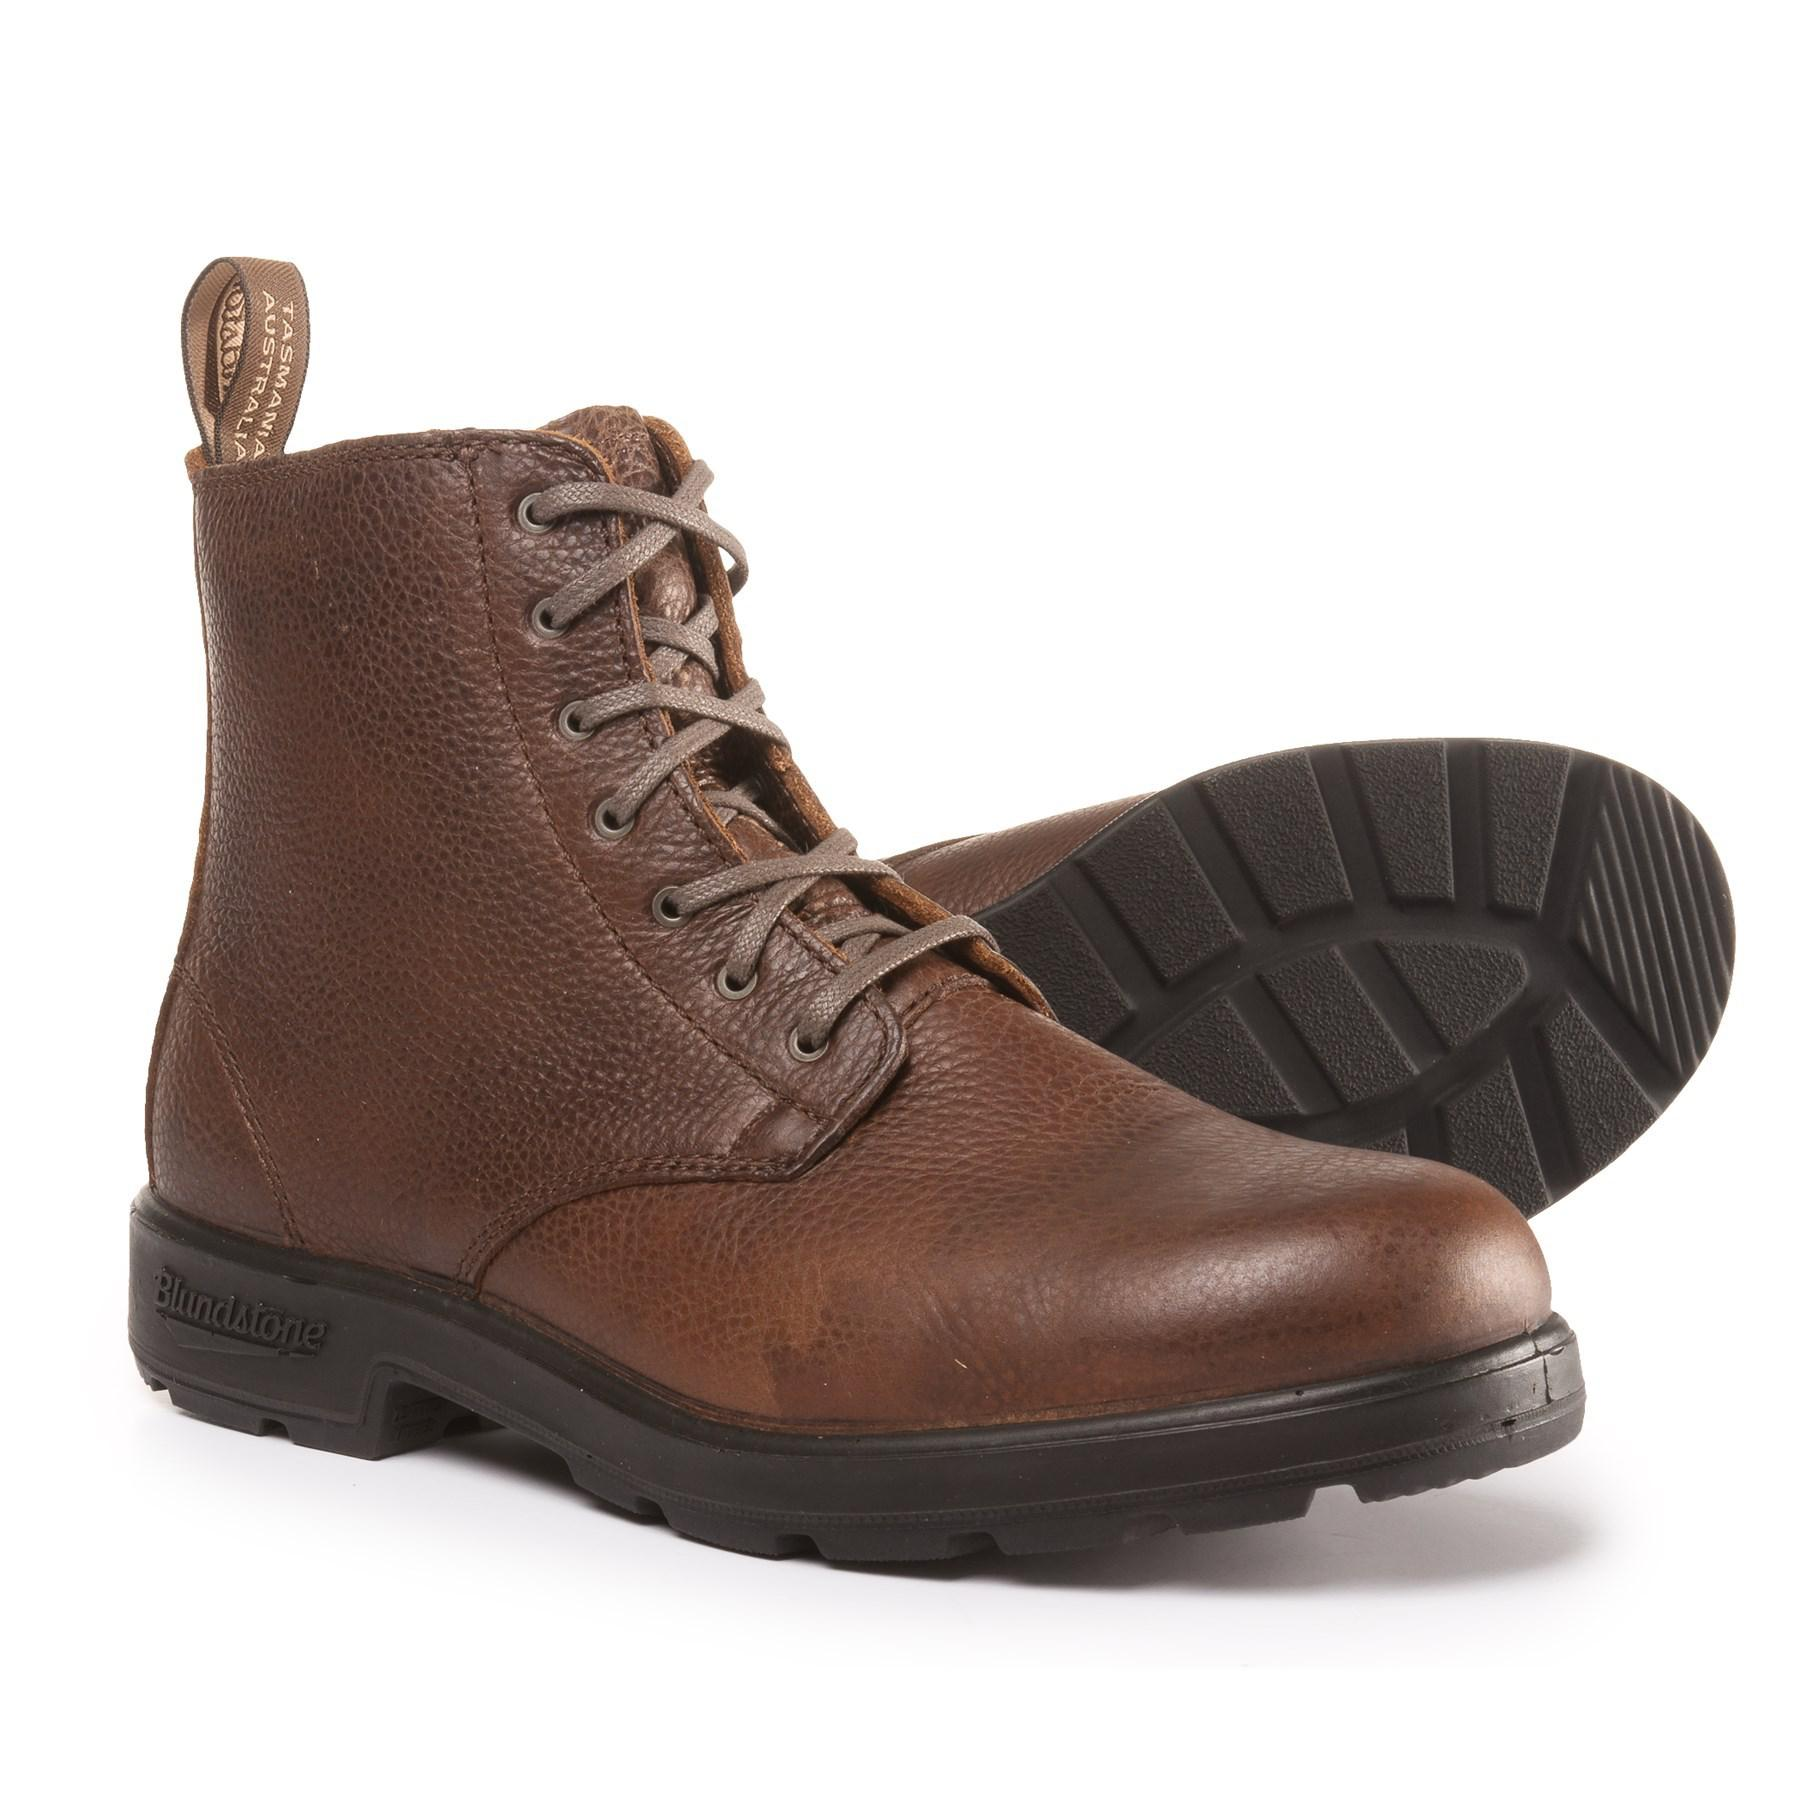 d16055b32f11 Lyst - Blundstone Lace-up Boots in Brown for Men